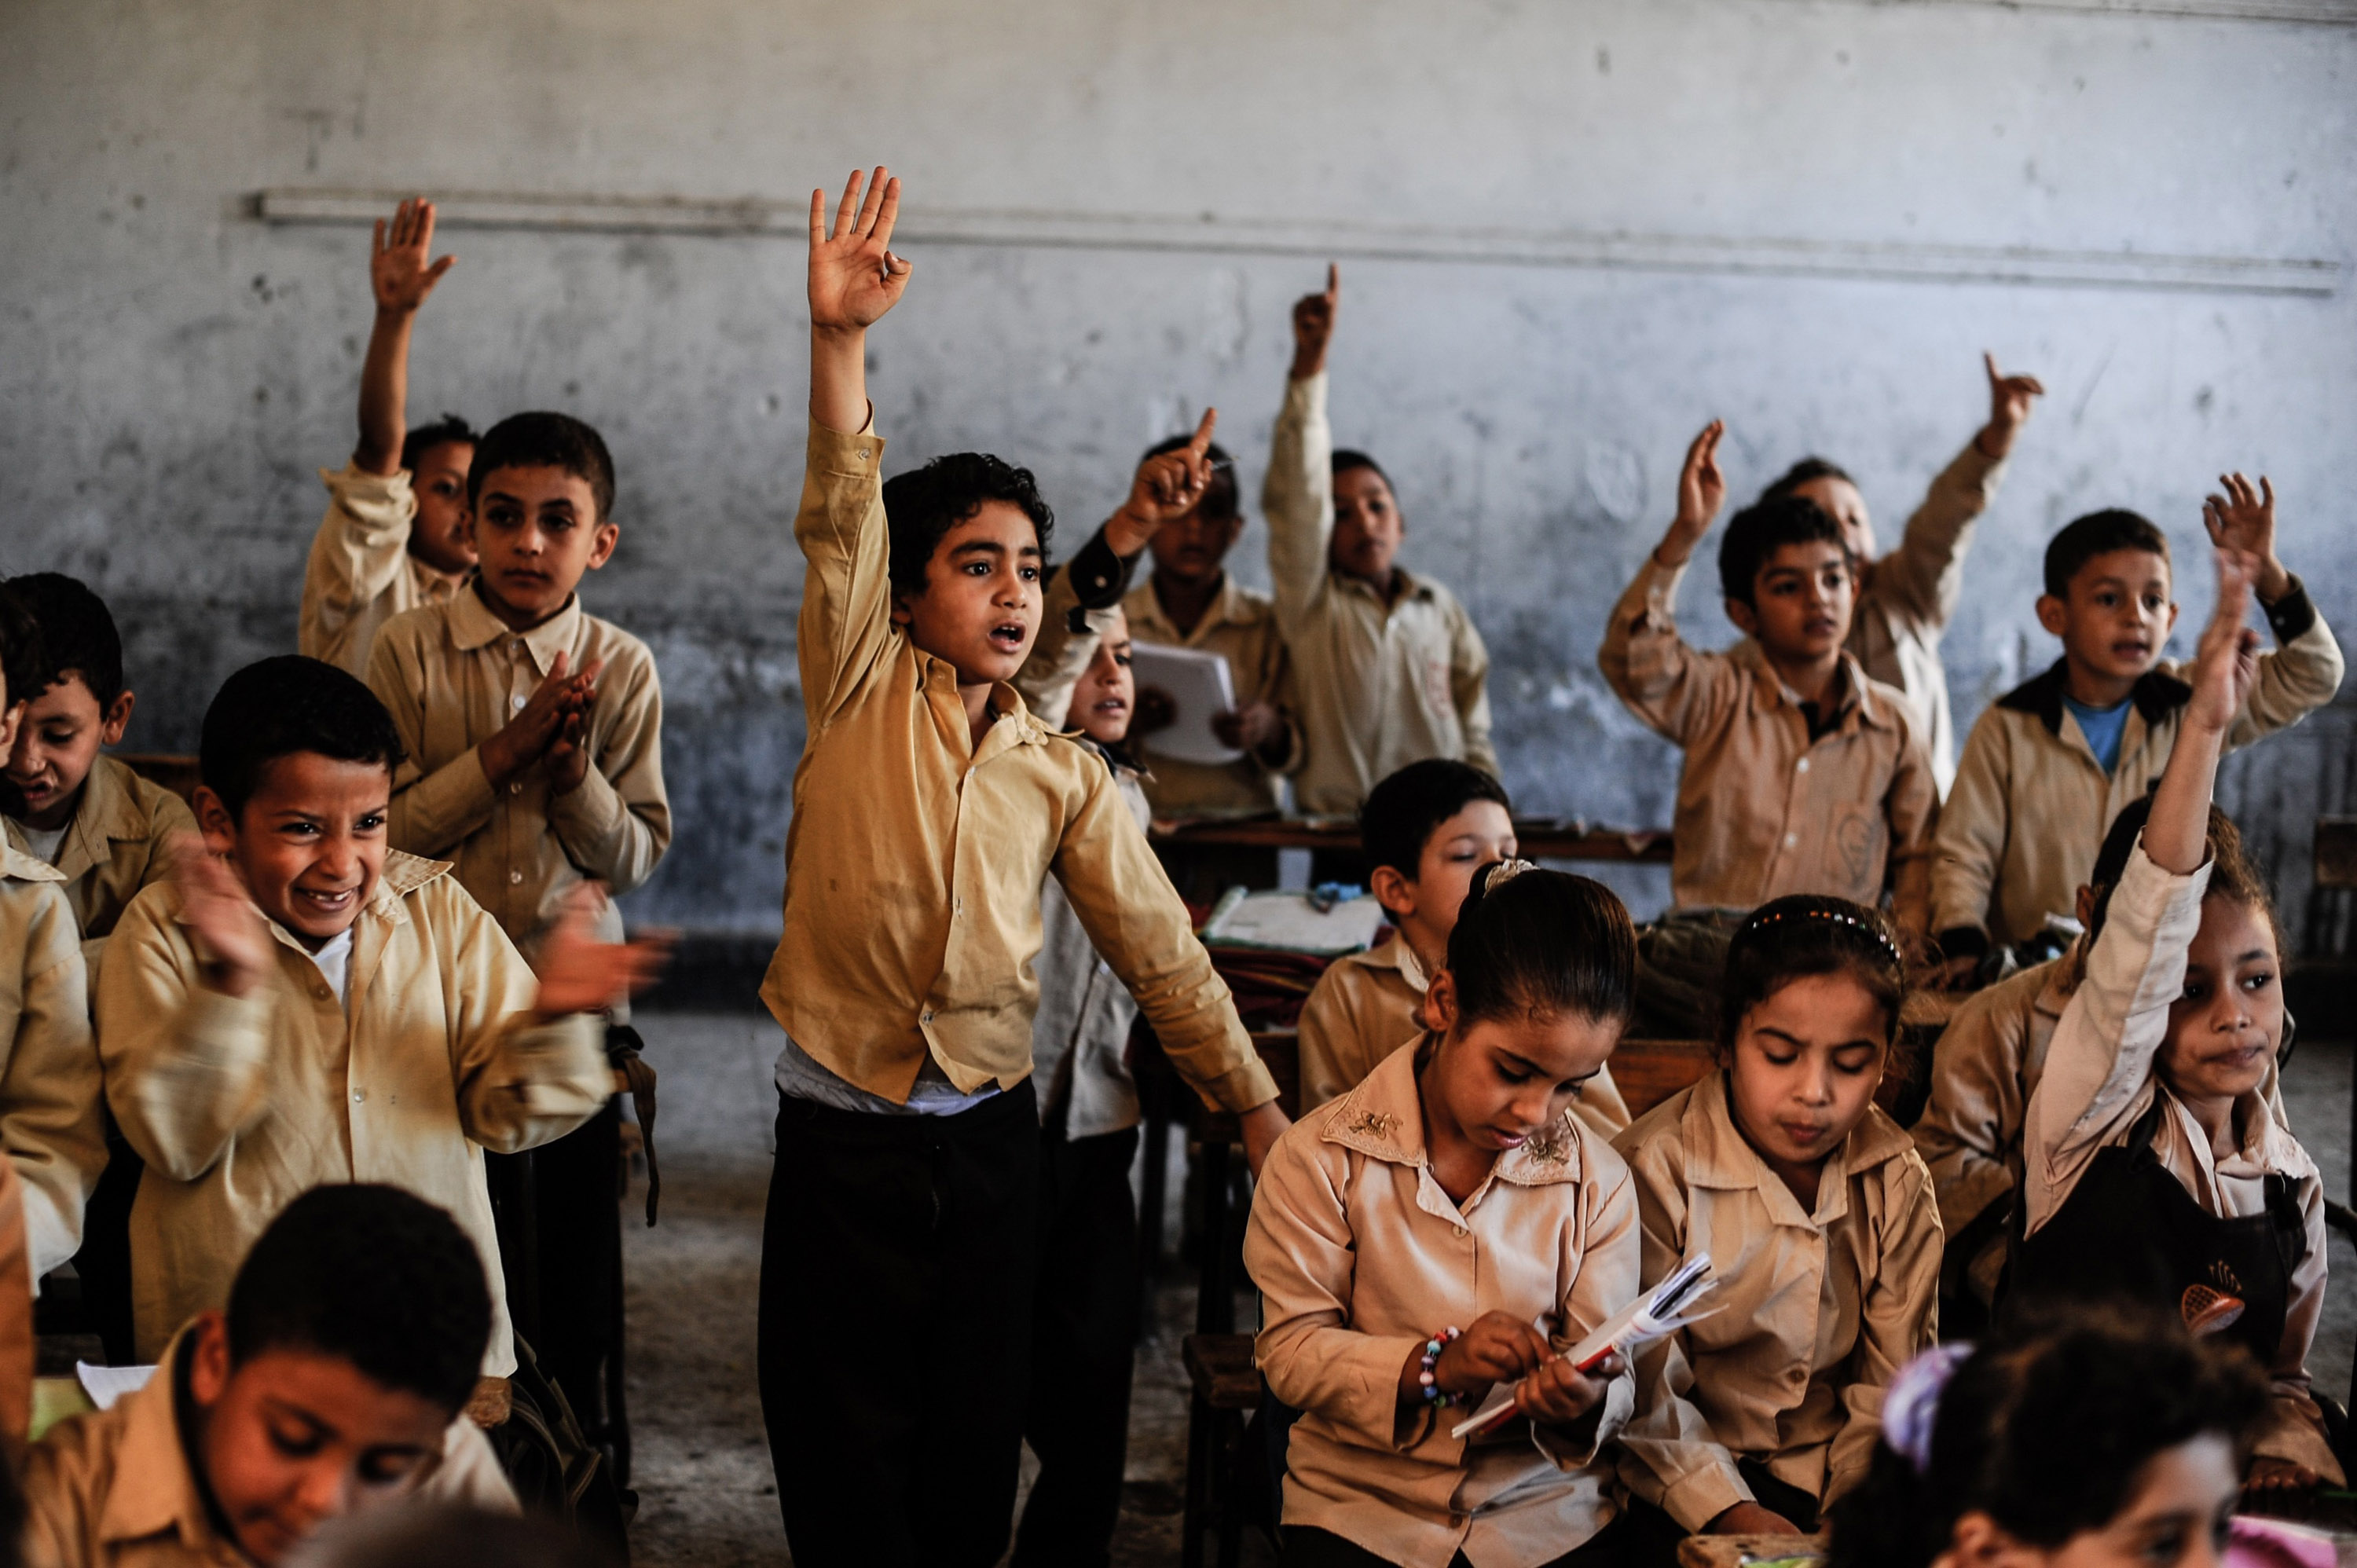 Elementary school students in Giza, Egypt, face big class sizes and poor equipment and facilities.